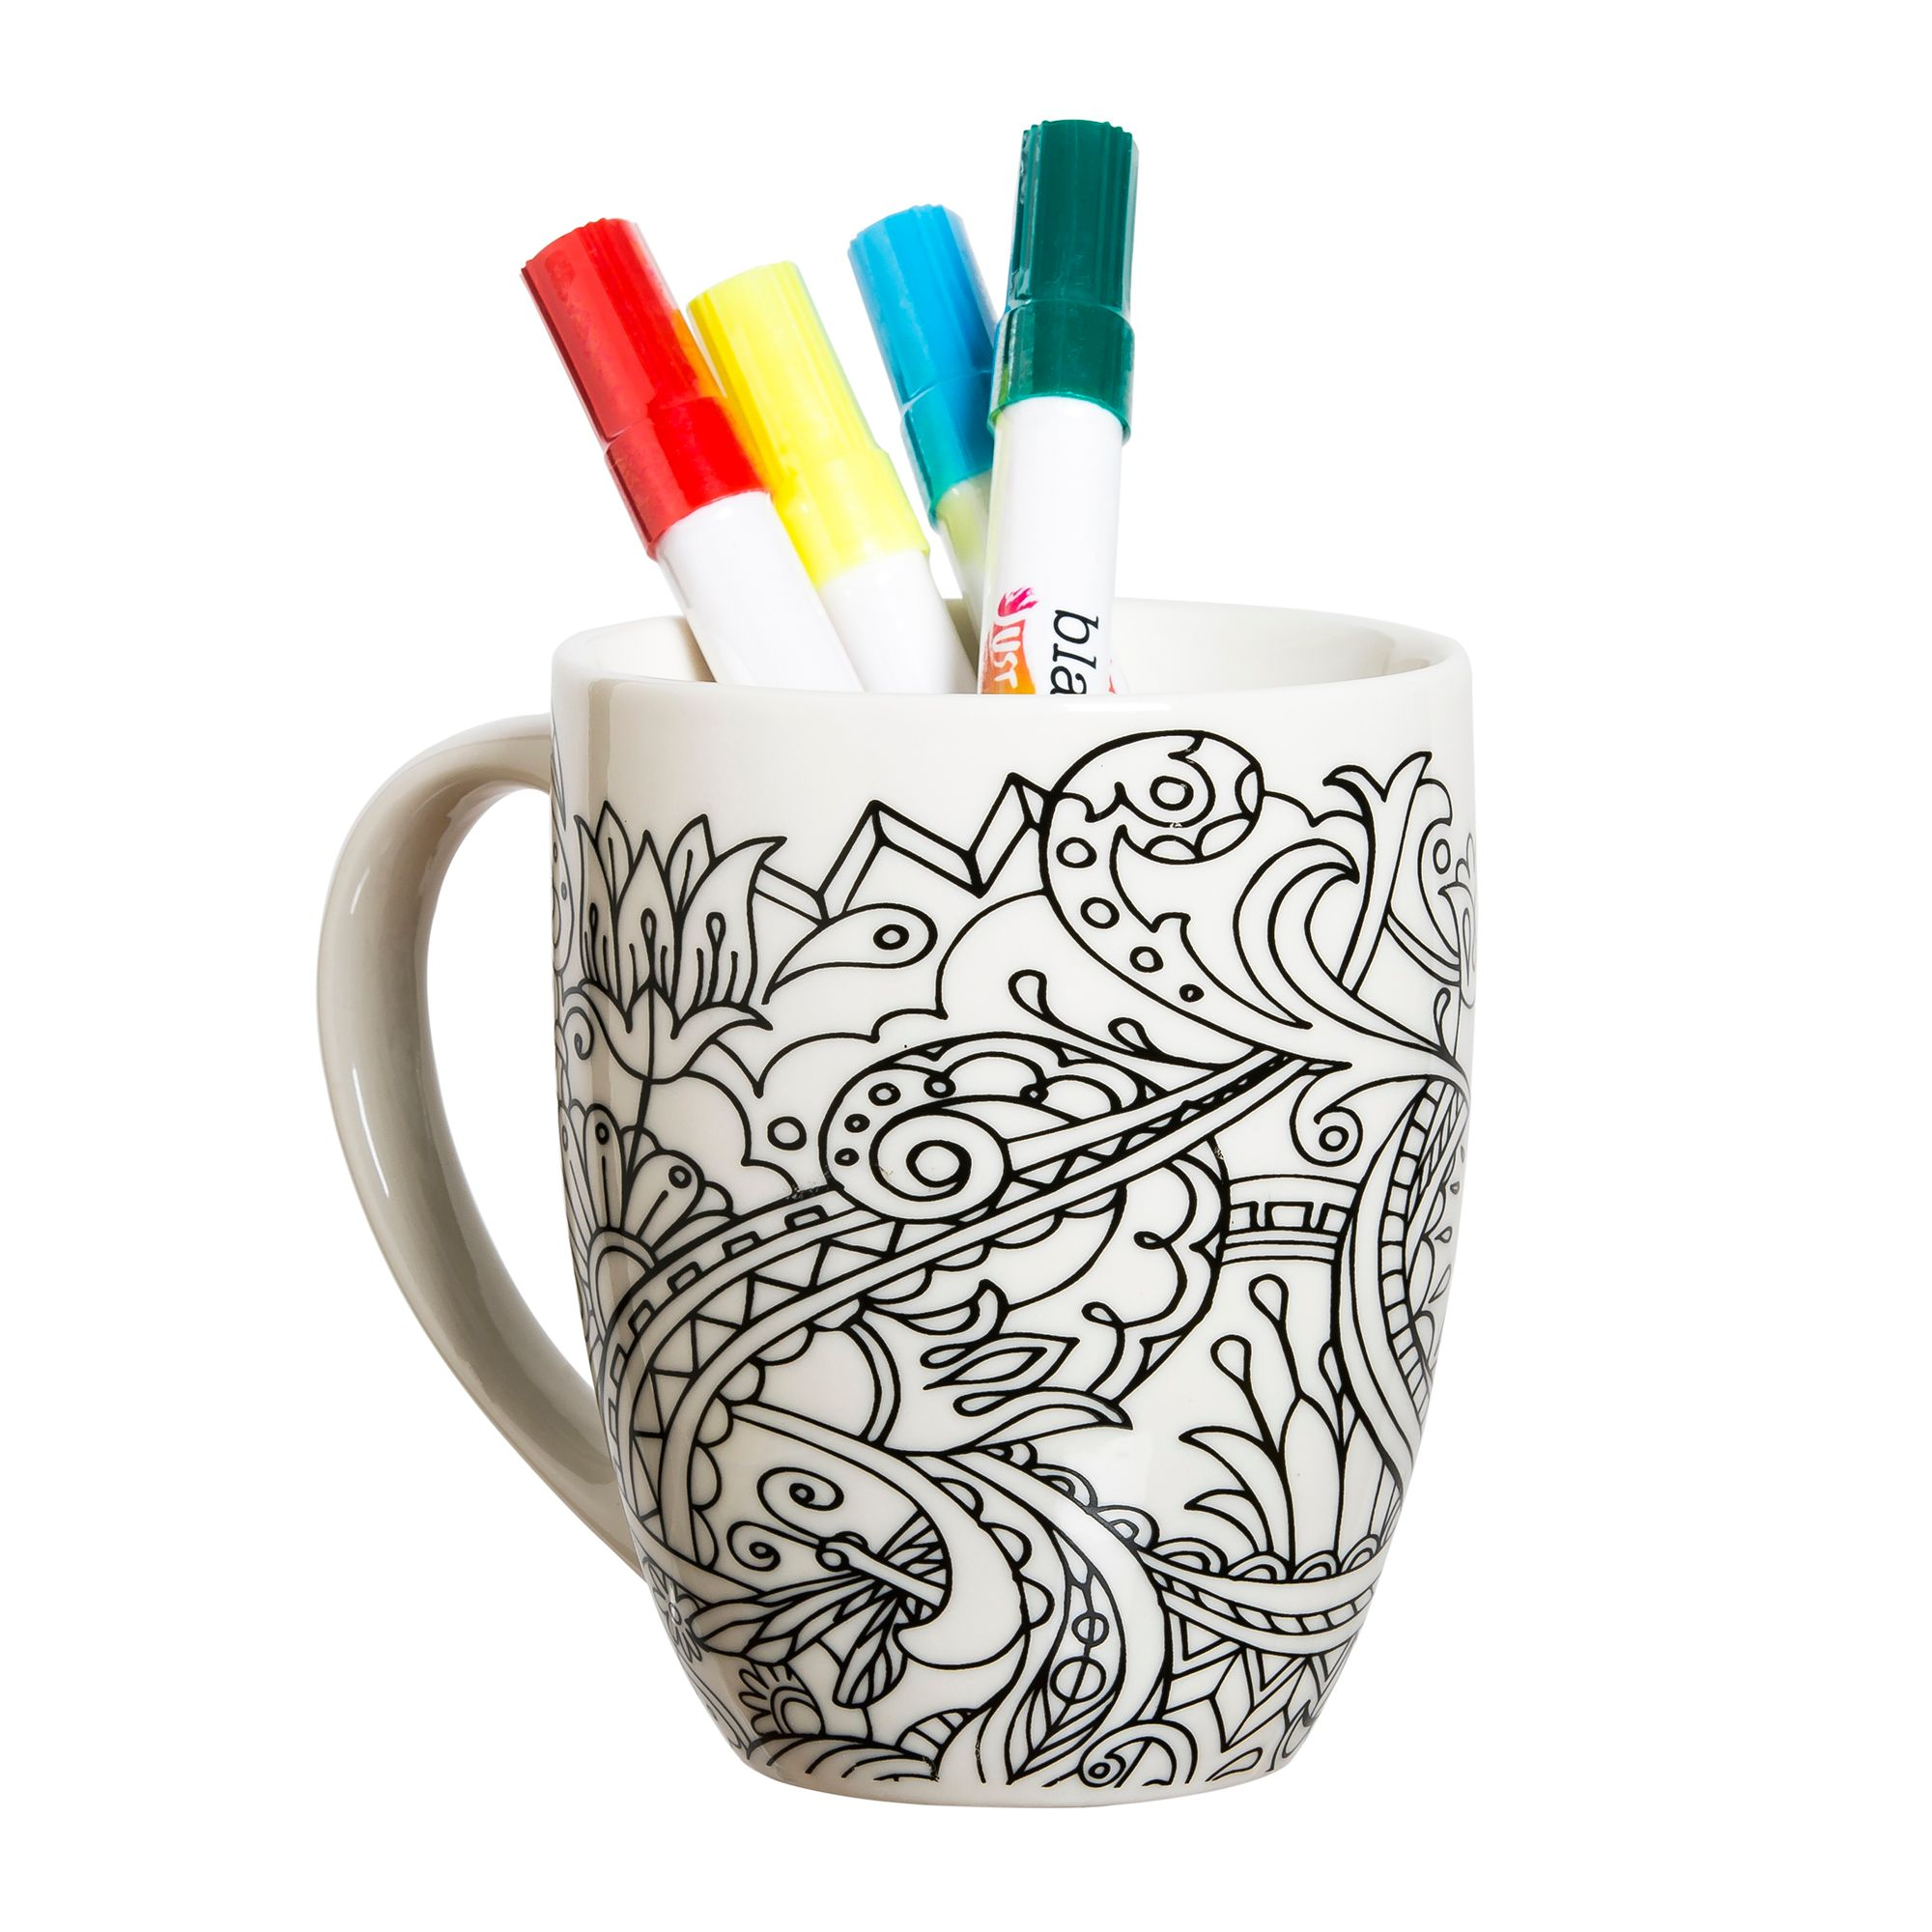 https://www.bedbathandbeyond.com/store/product/floral-accented-coloring-mug/1047404496?skuId=47404496&mcid=PS_googlepla_nonbrand_dining_online&product_id=47404496&adtype=pla&product_channel=online&adpos=1o1&creative=223852732203&device=c&matchtype=&network=g&mrkgadid=3140840171&mrkgcl=609&rkg_id=0&gclid=Cj0KCQjw5NnbBRDaARIsAJP-YR-unbIh1Zh4yaAyjOU66nyLEFEJLehxjM-_BhKptHUiy5kUDuny-ZMaAu4HEALw_wcB&gclsrc=aw.ds